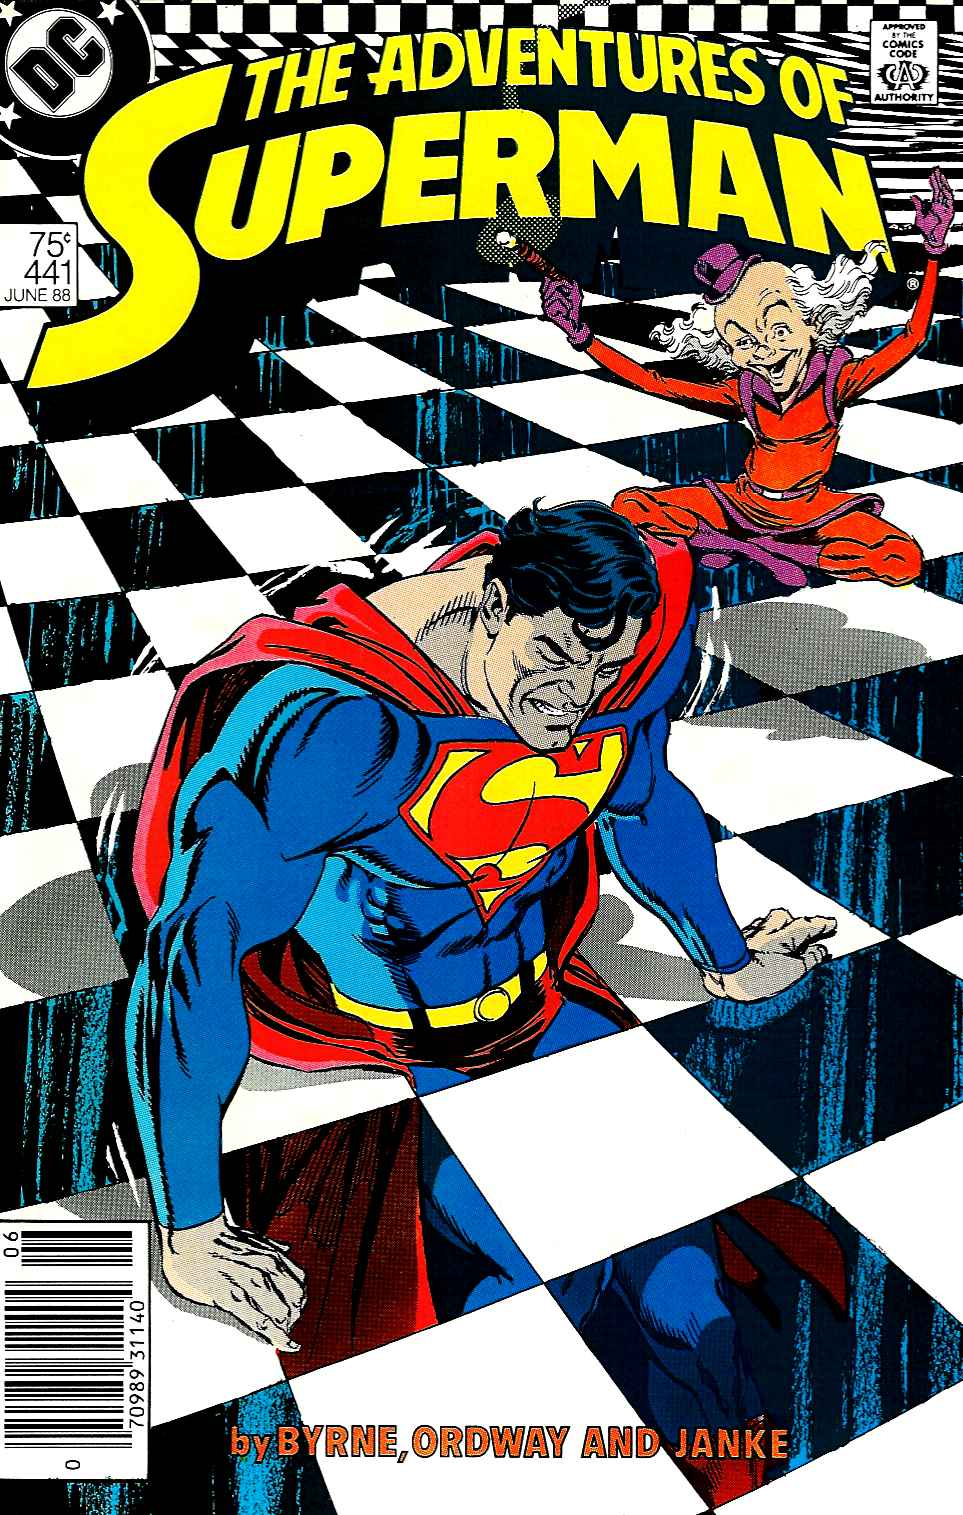 Adventures of Superman (1987) 441 Page 1